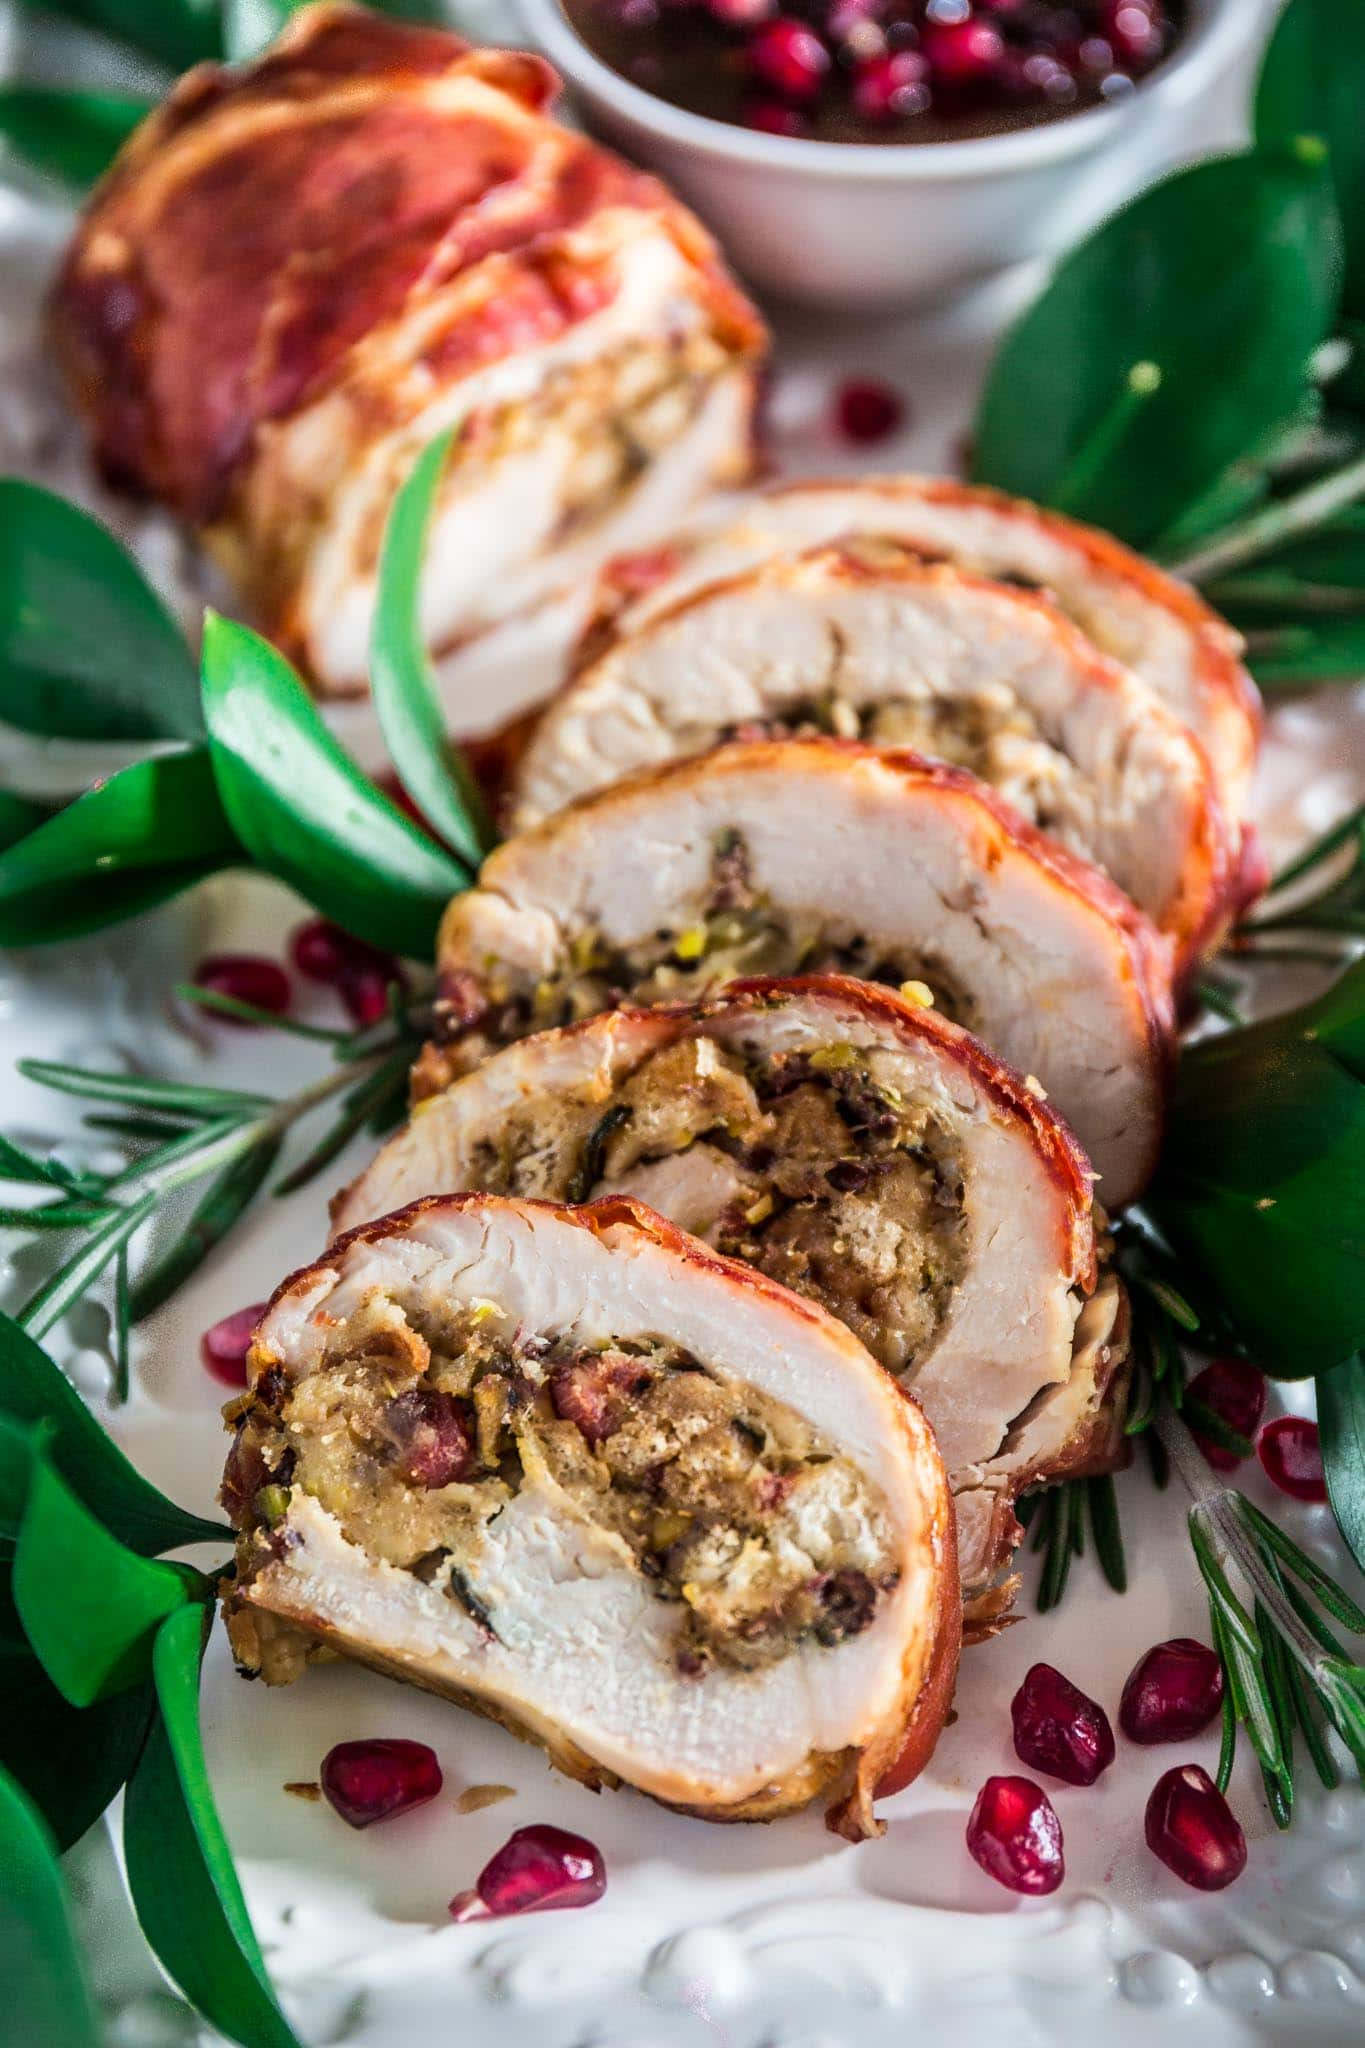 Prosciutto Wrapped Turkey Roulade with Pomegranate-Port Reduction Sauce   www.oliviascuisine.com   No time to roast a whole turkey? Knock the socks off your guests with this simple and quick to assemble turkey roulade. Moist, stuffed with pancetta, pistachio and cranberries, wrapped in Prosciutto di Parma and served with a lip-smacking pomegranate port reduction sauce. One bite and the holidays will never be the same again!